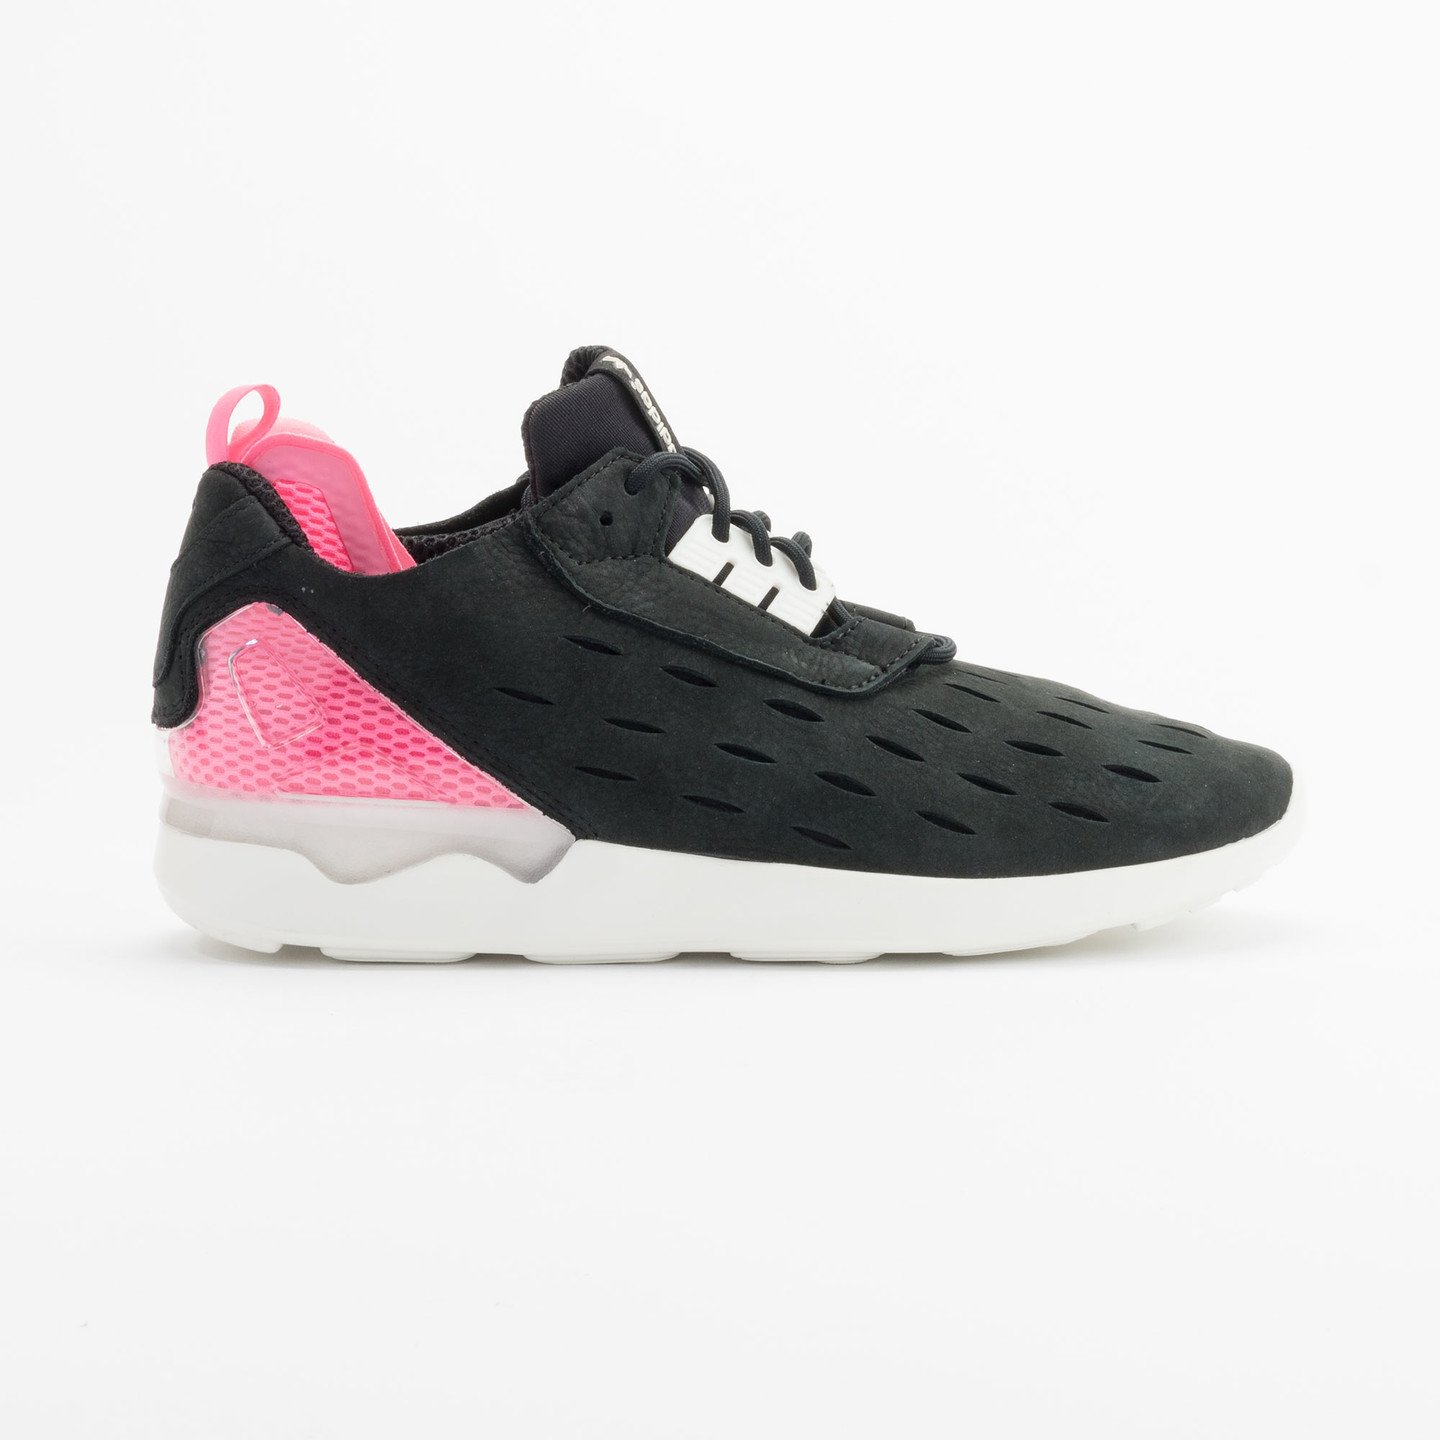 Adidas ZX 8000 Blue Boost Black/Hot-Pink/White B25872-45.33